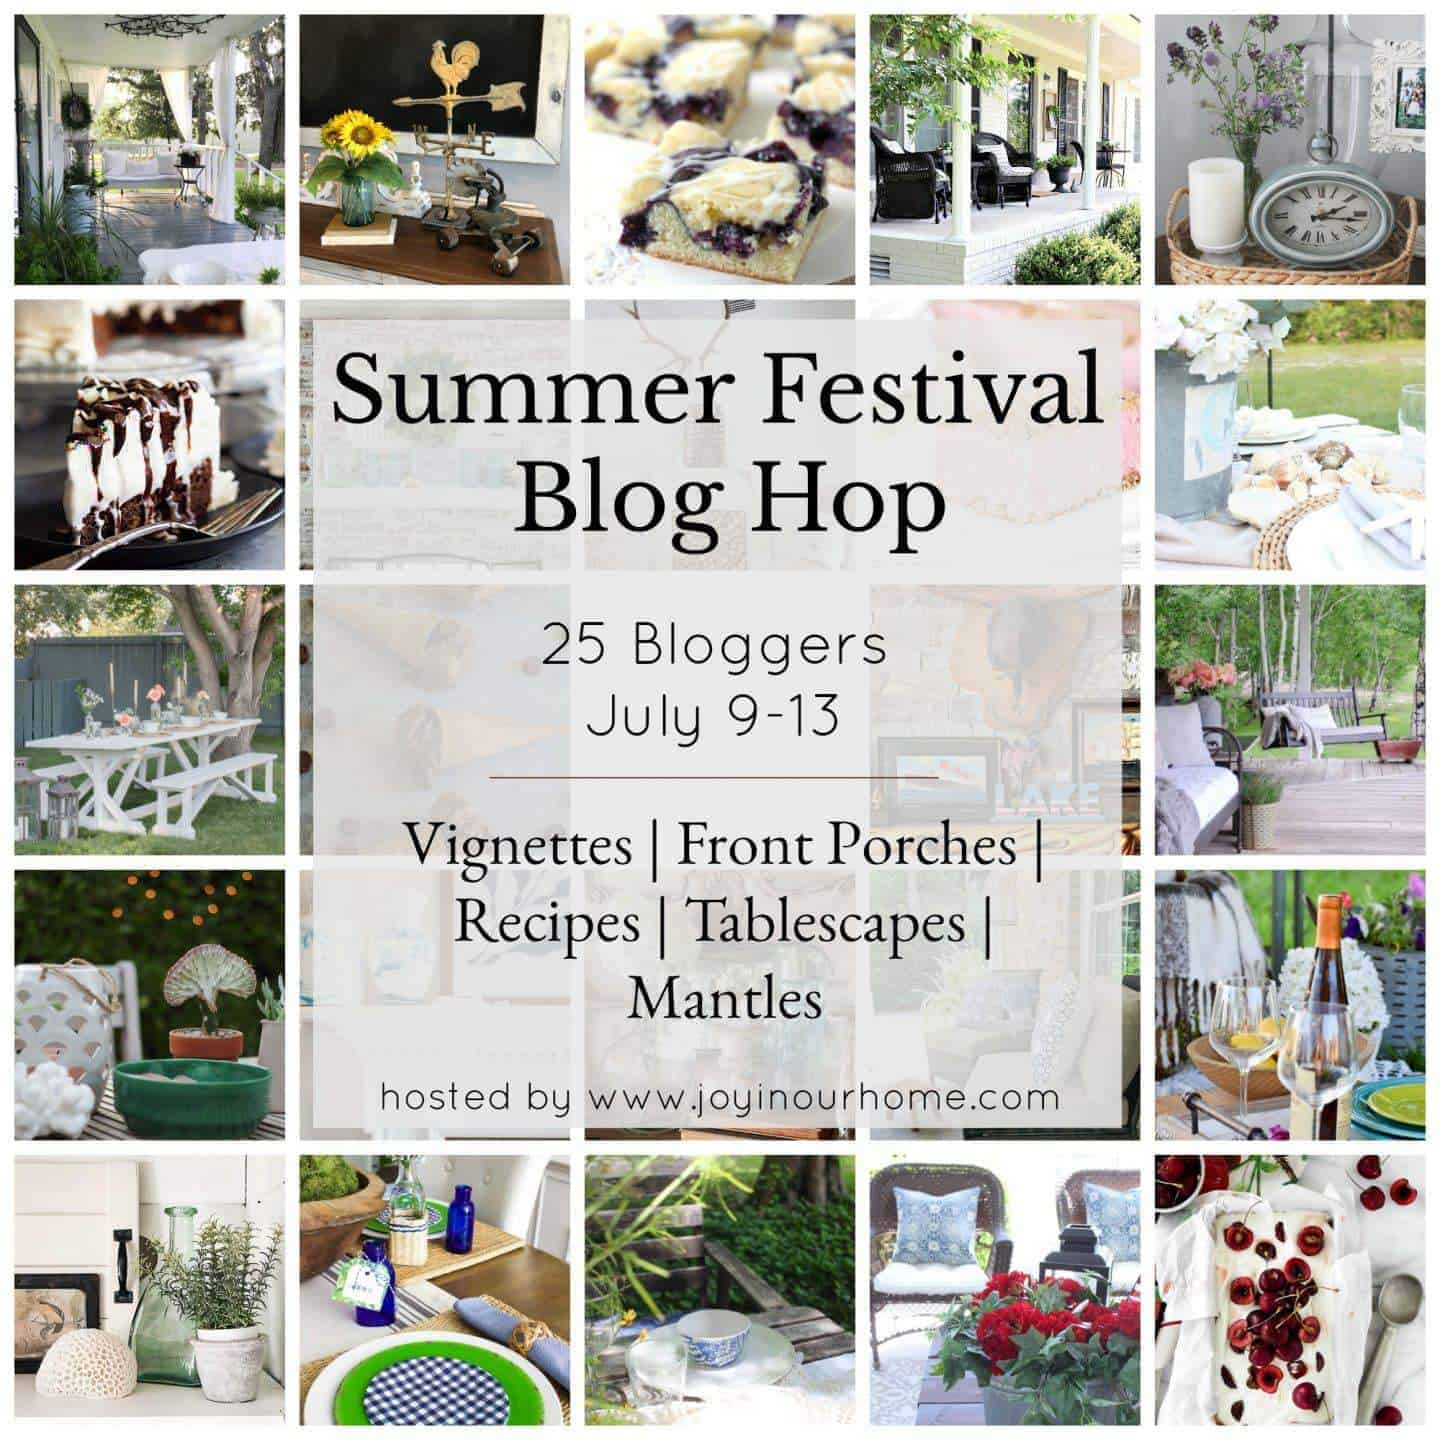 Summer Festival Blog Hop graphic